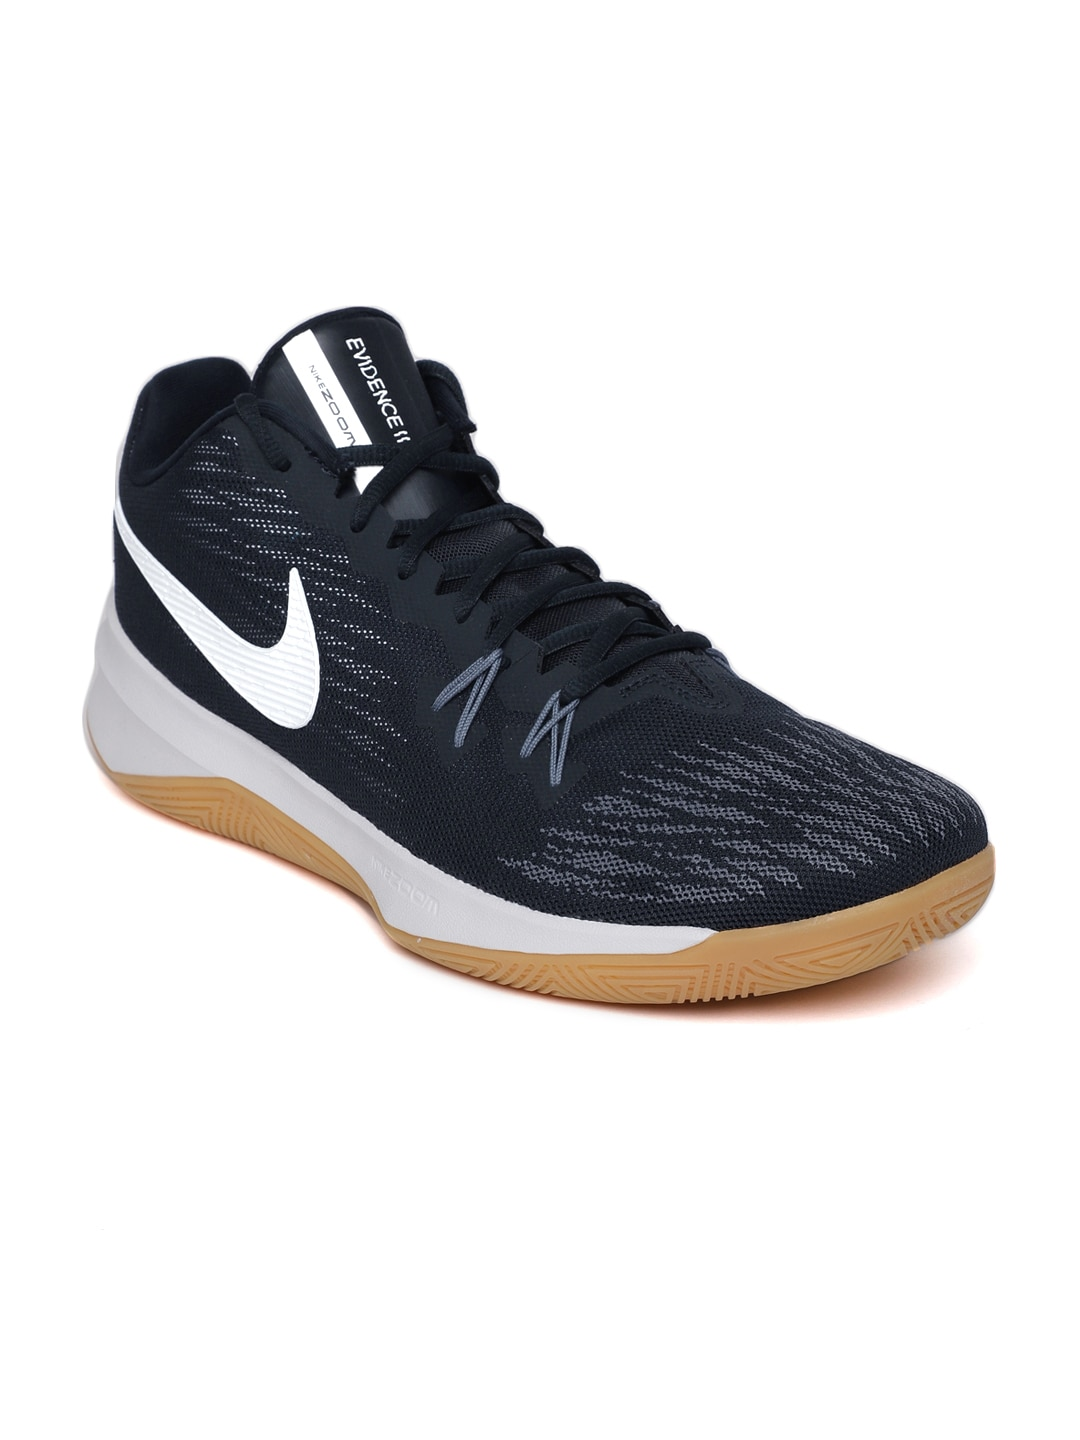 36b7ea656c067 Nike Navy Blue Blue Shoes - Buy Nike Navy Blue Blue Shoes online in India